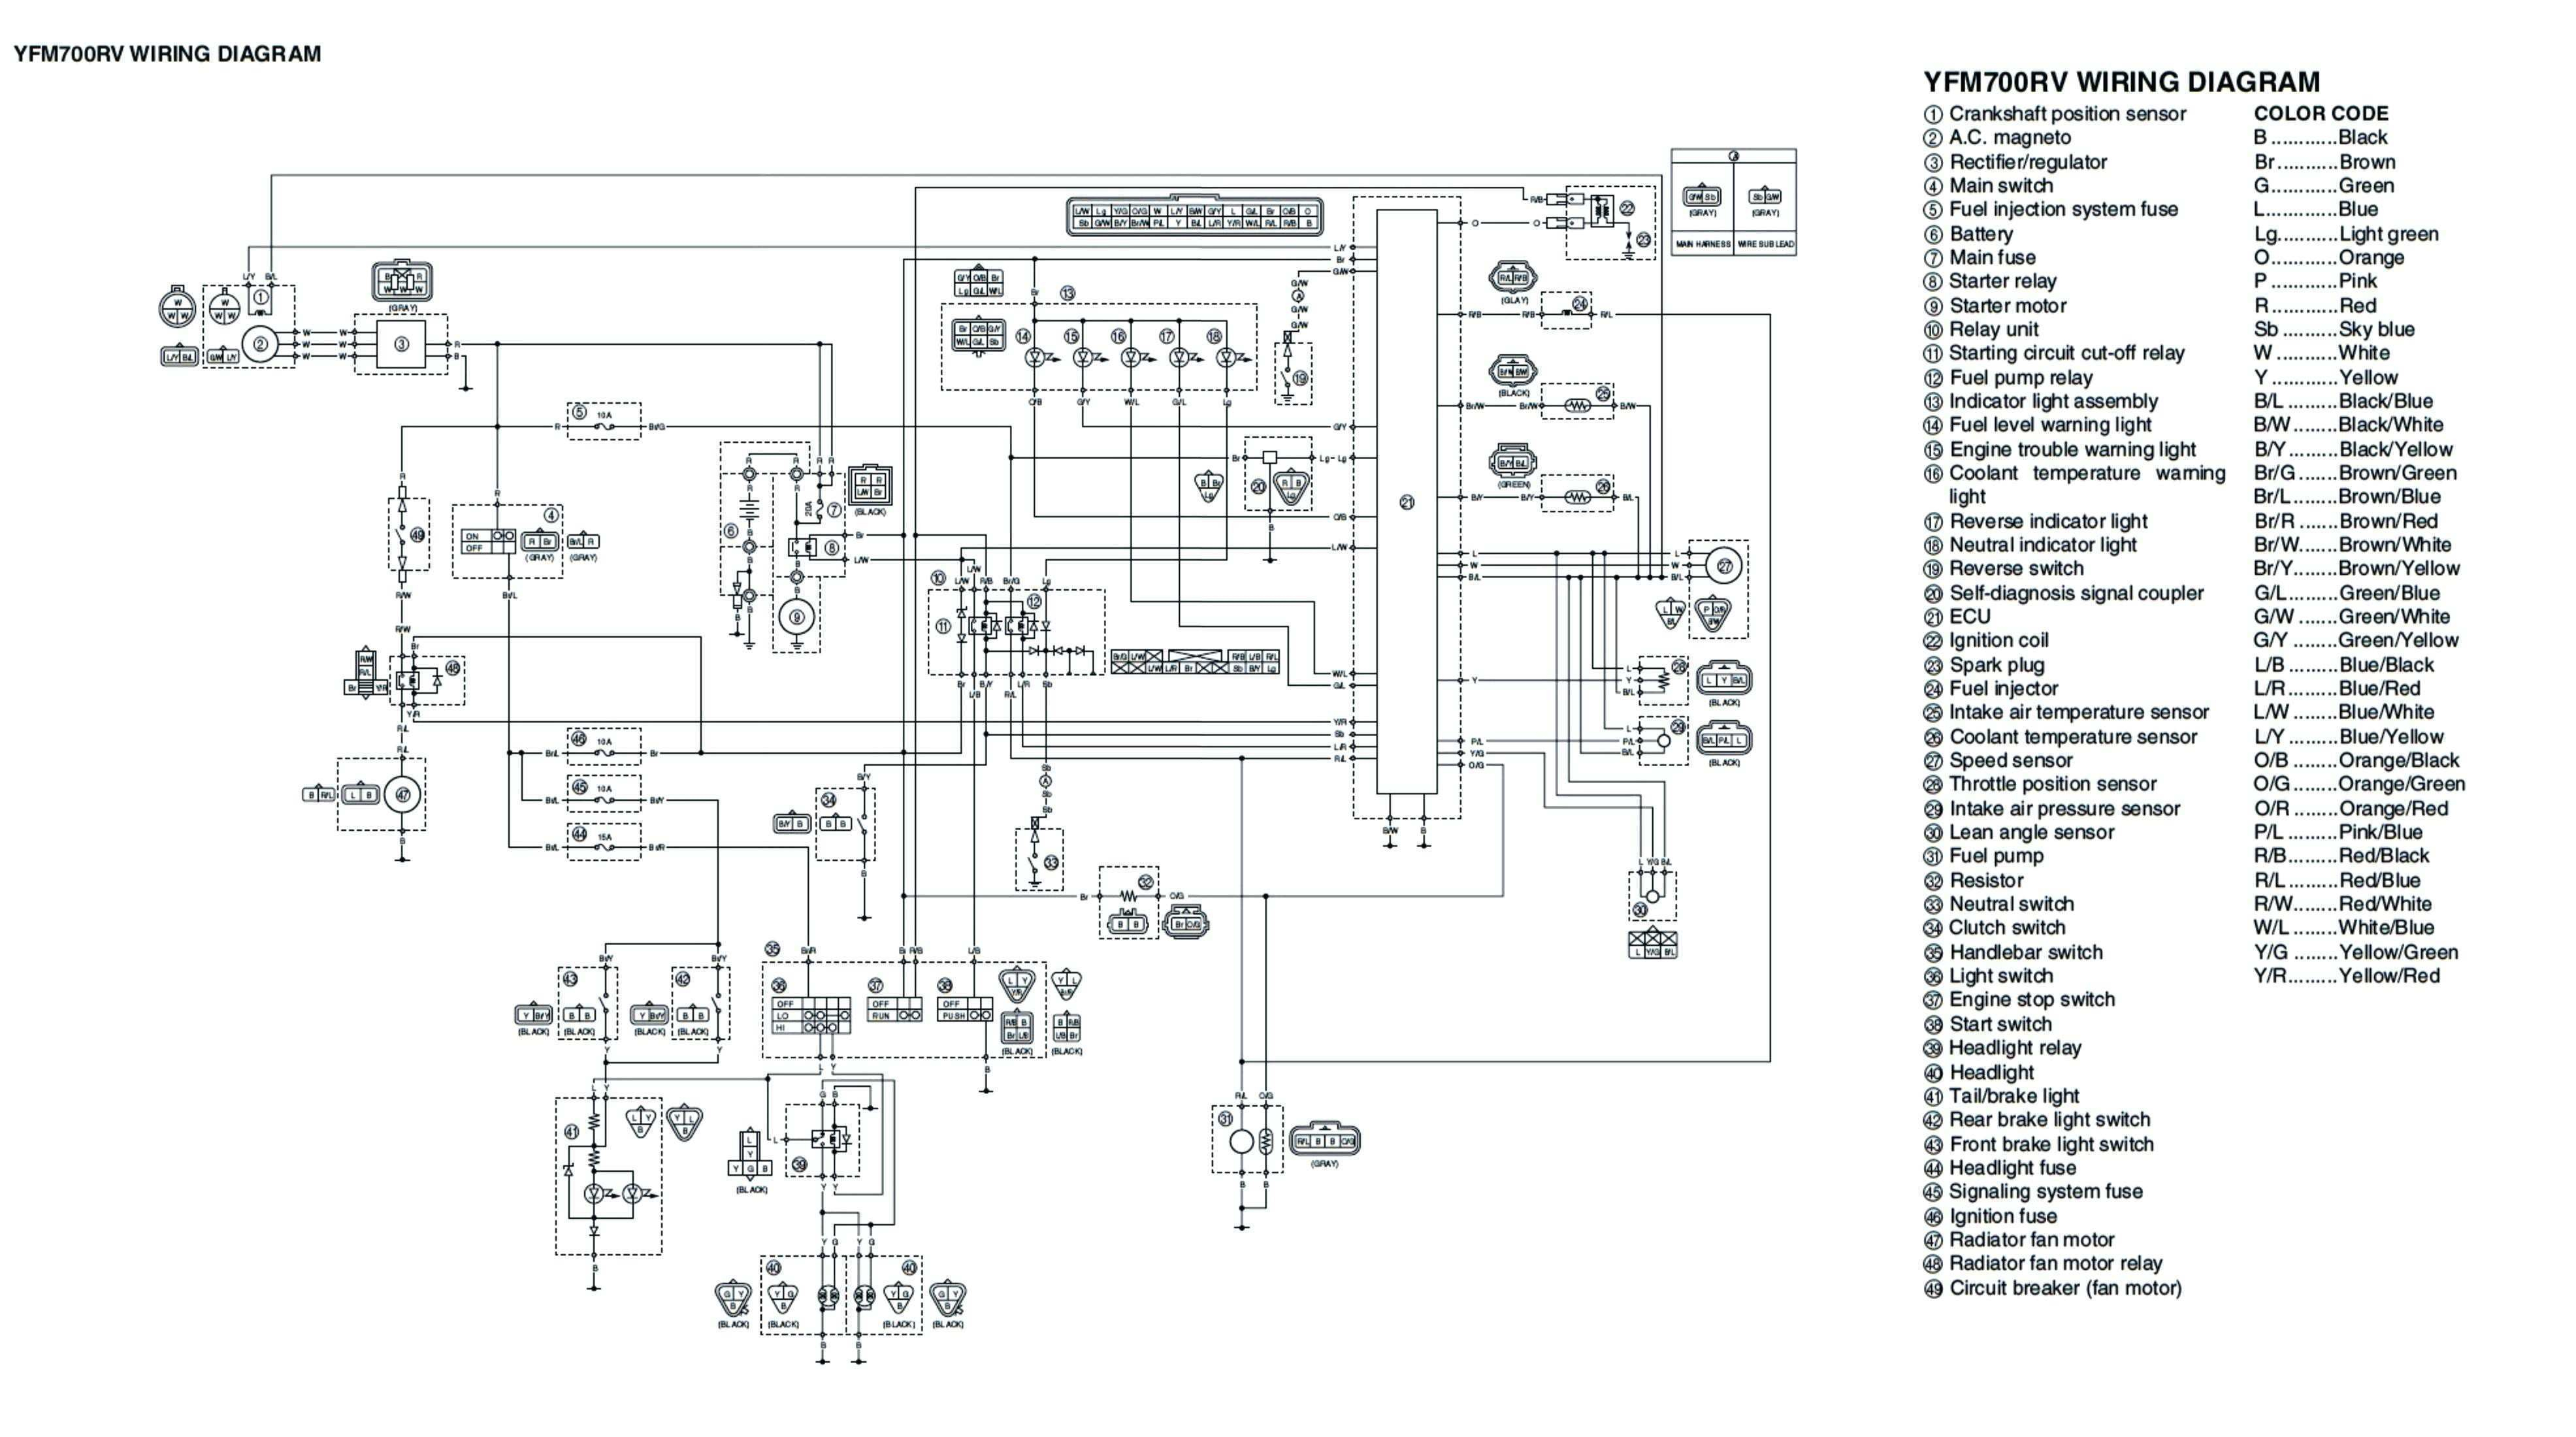 Tao Tao 125 Atv Wiring Diagram | Wiring Diagram - Tao Tao 110 Atv Wiring Diagram